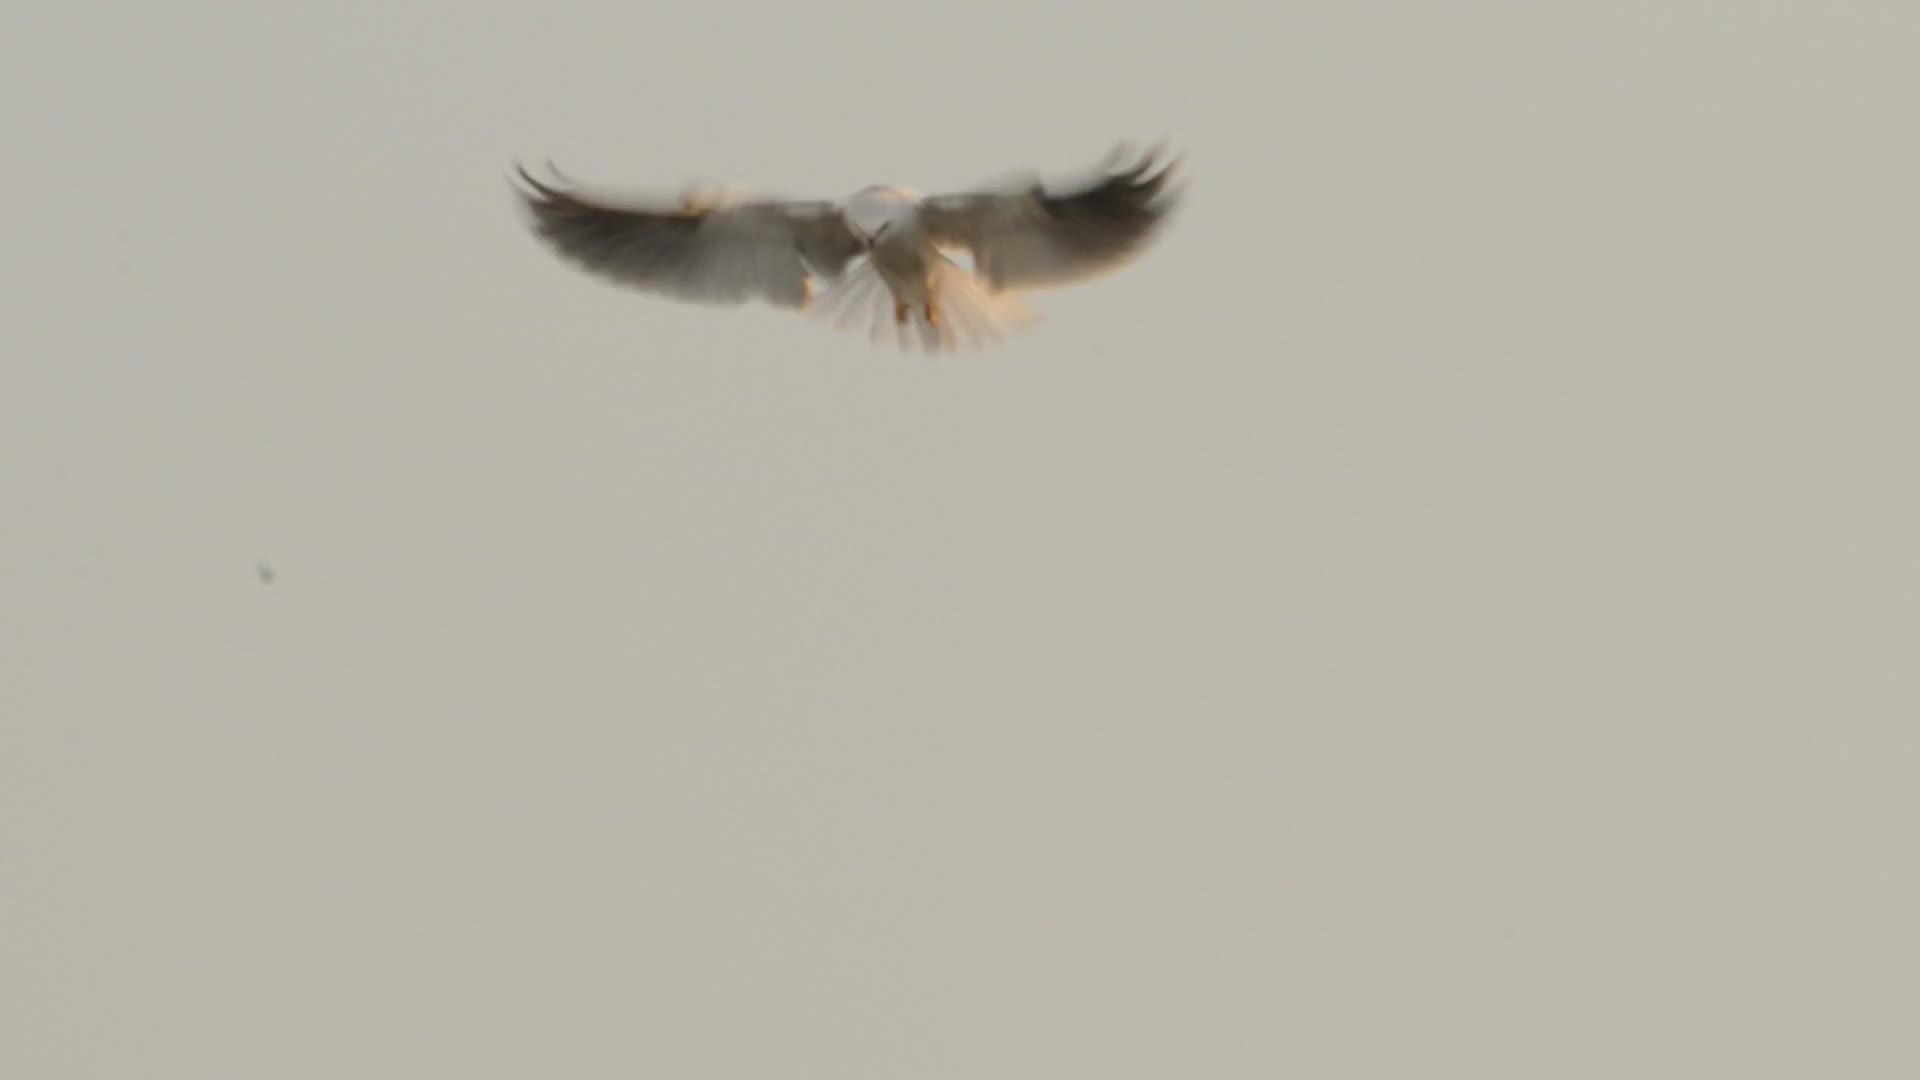 white-tailed kite, A Close Up Look at a White-tailed Kite Hunting and Eating GIFs